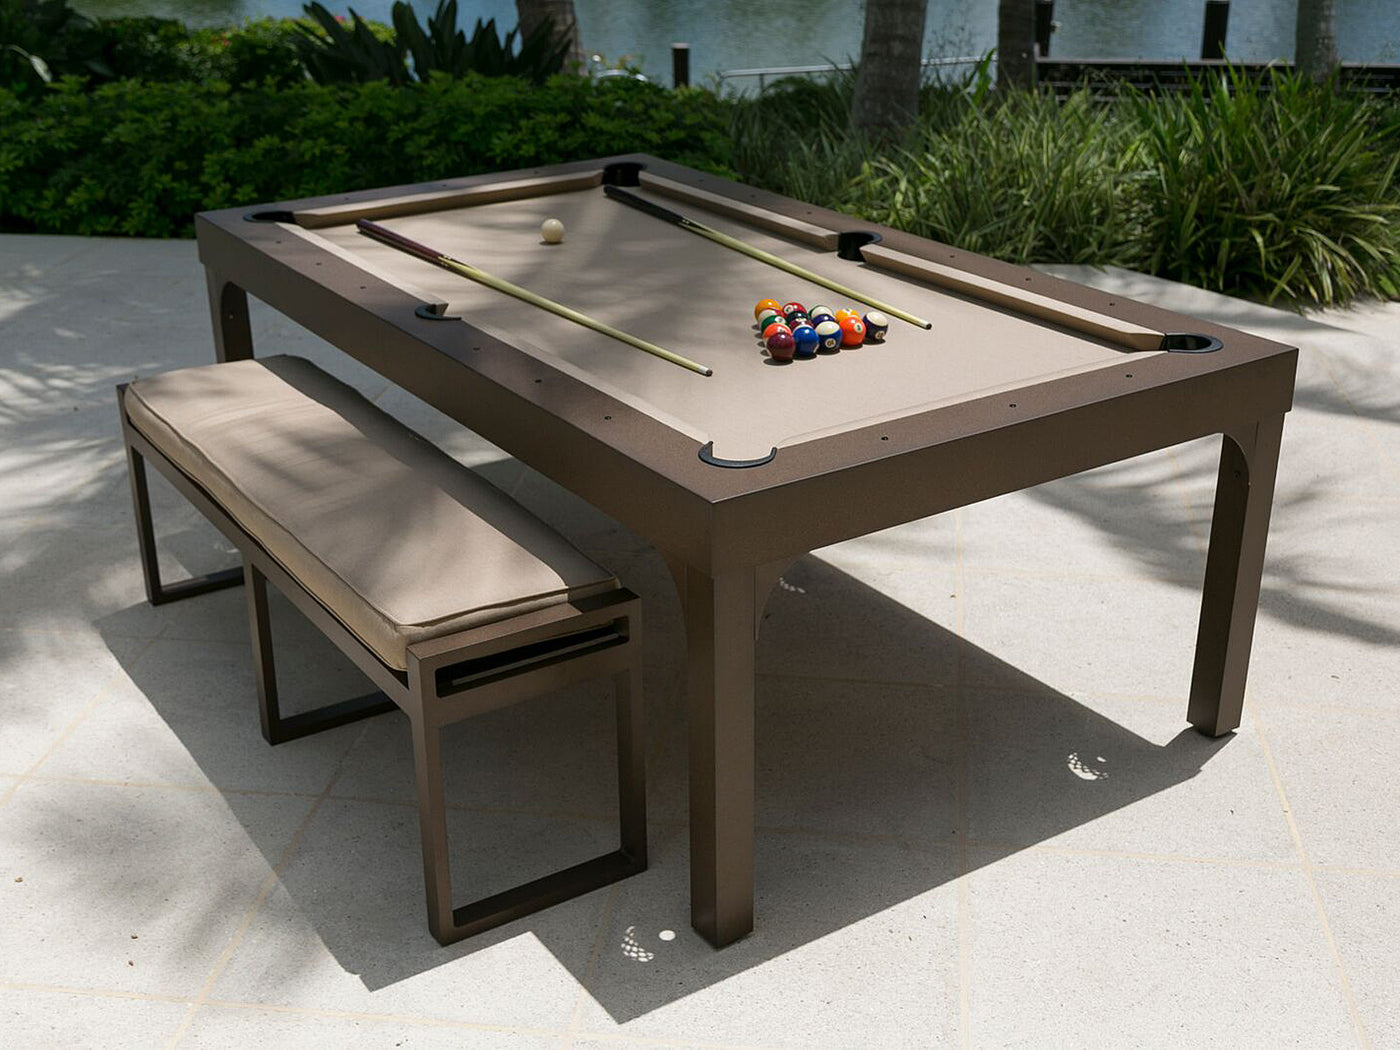 The Balcony Outdoor Pool Table Robbies Billiards - Pool dining table with bench